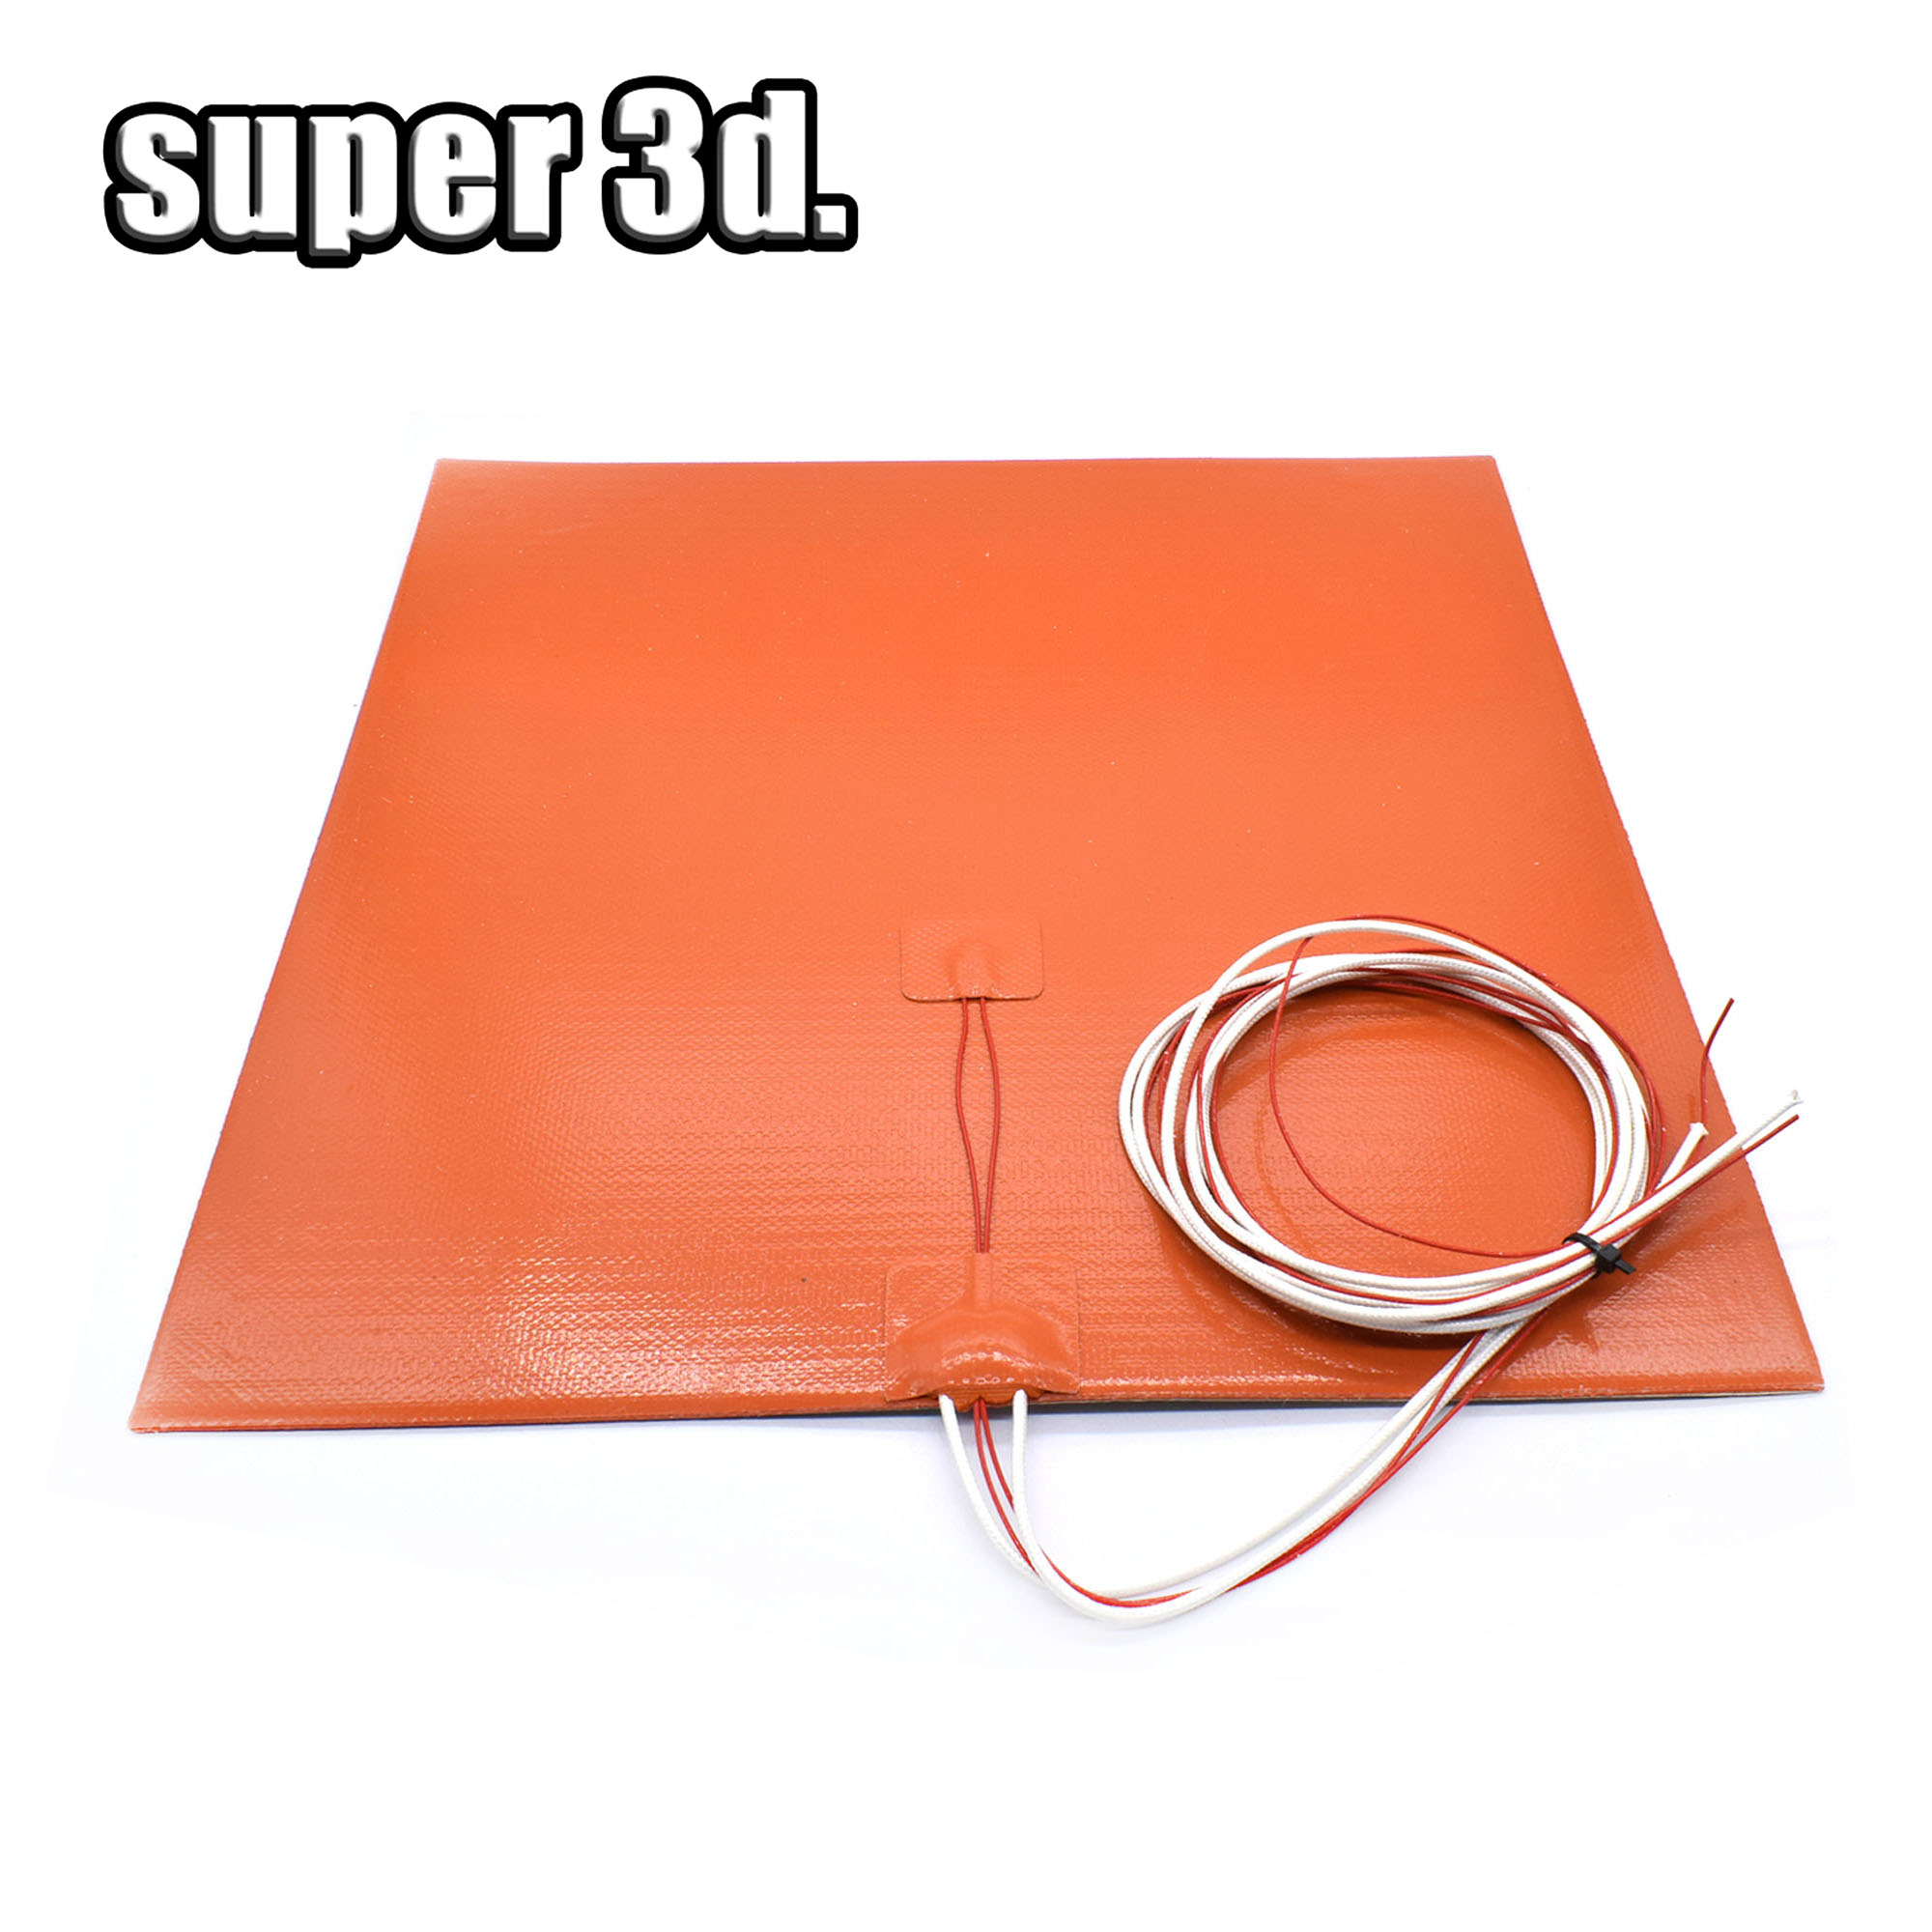 Silicone Heated Bed Heating Pad Waterproof 220 300x300 310 235 400 mm 12V 220 110 V for 3D printer Ender-3 cr10 Parts hot bed